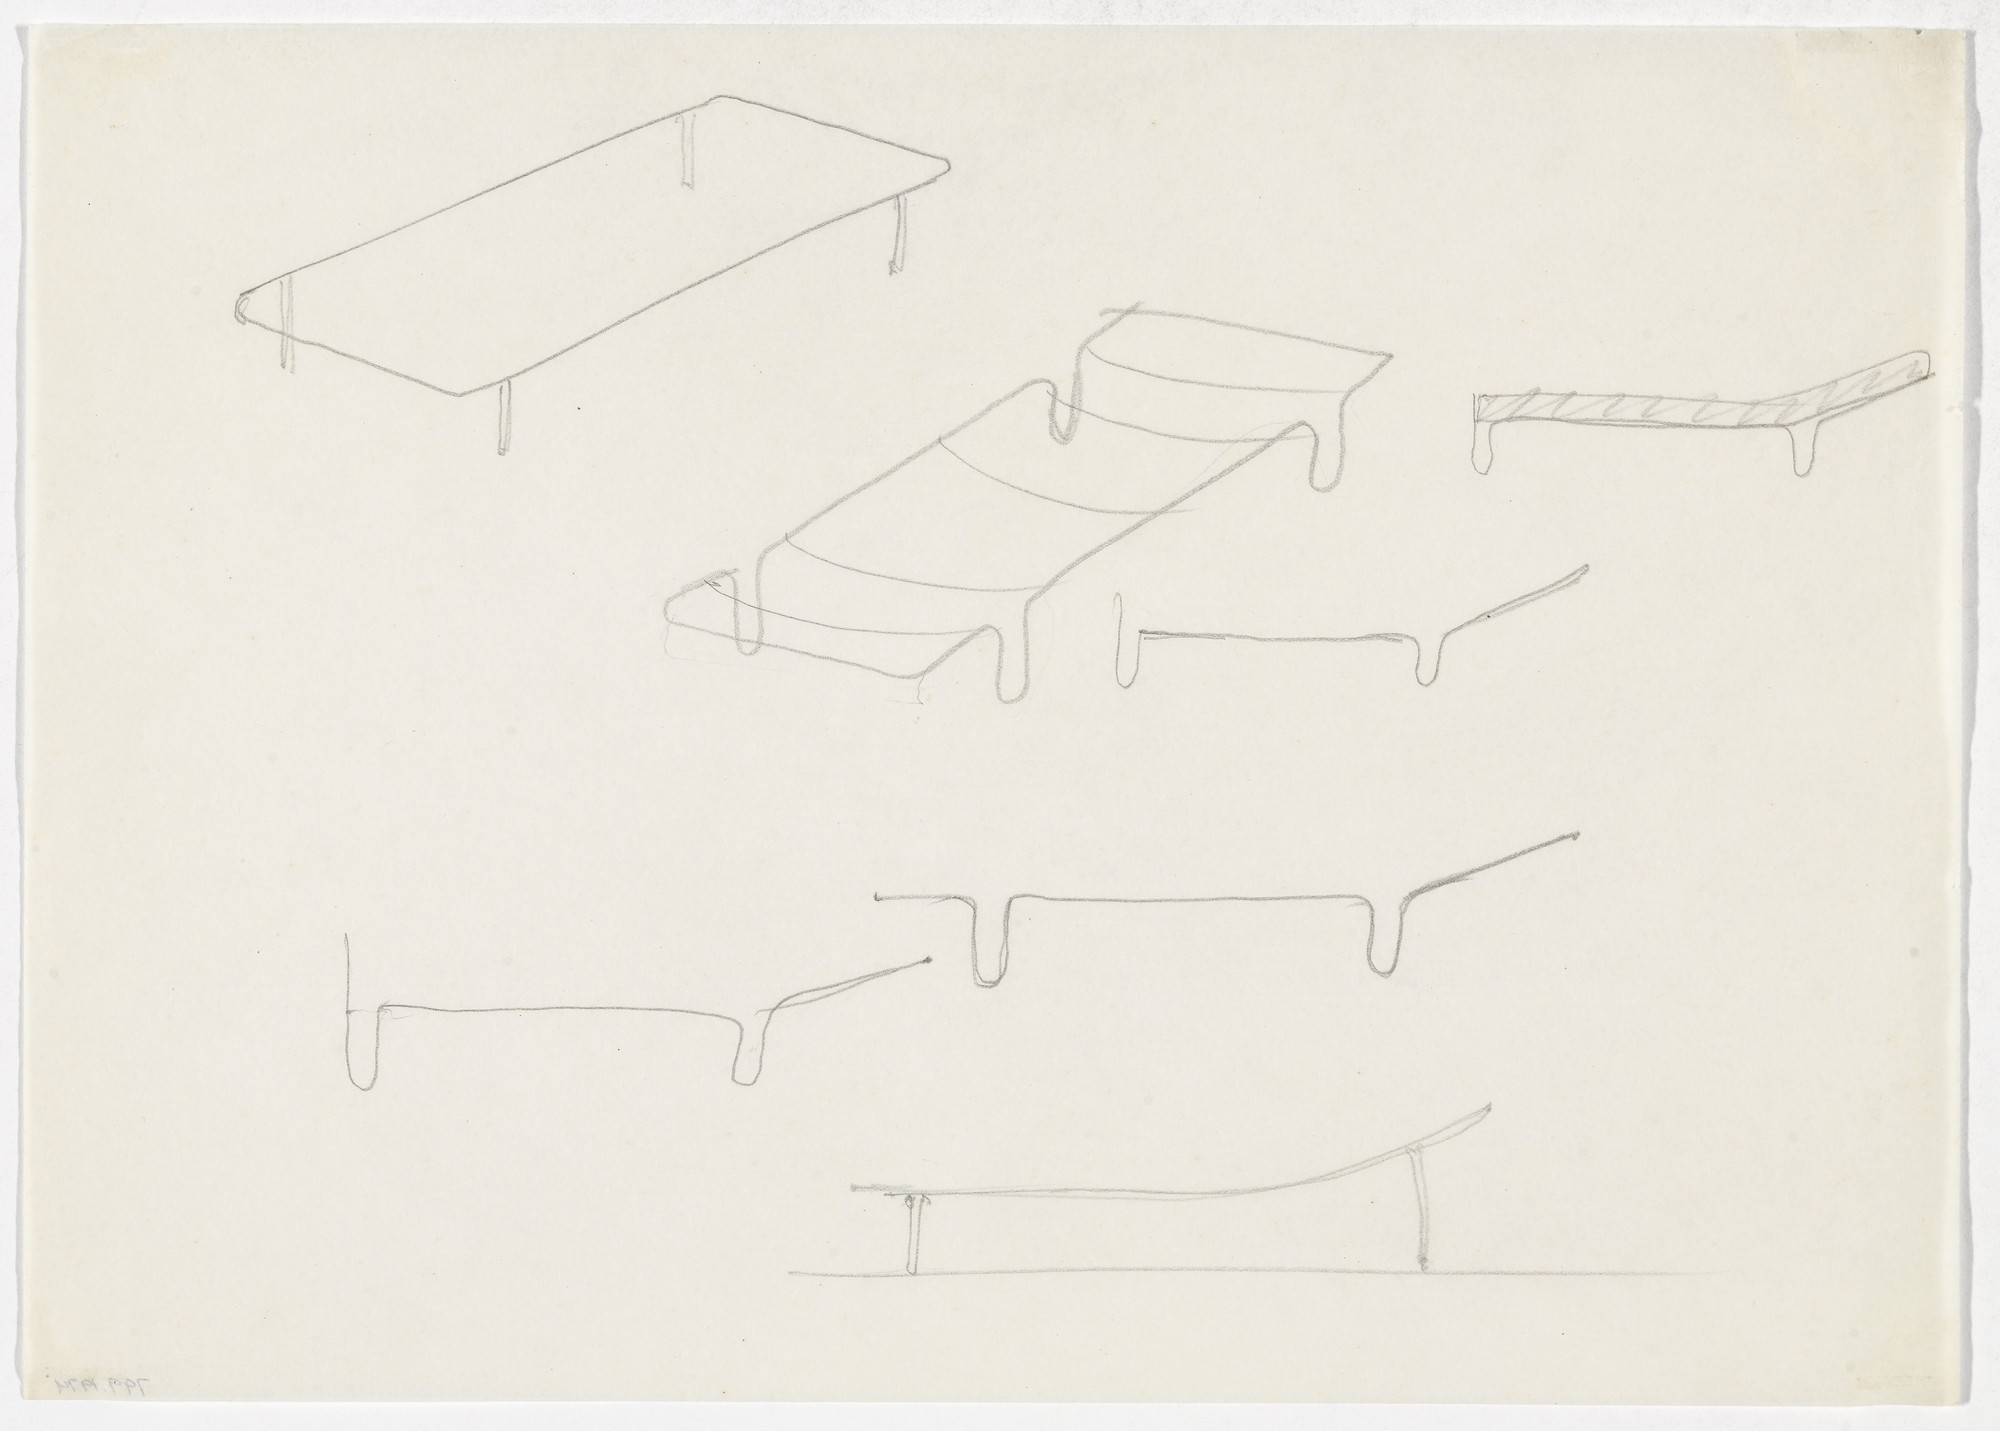 Ludwig Mies van der Rohe. Day Bed. Day Bed Frame. (Perspective sketches, elevation sketches). early 1930s